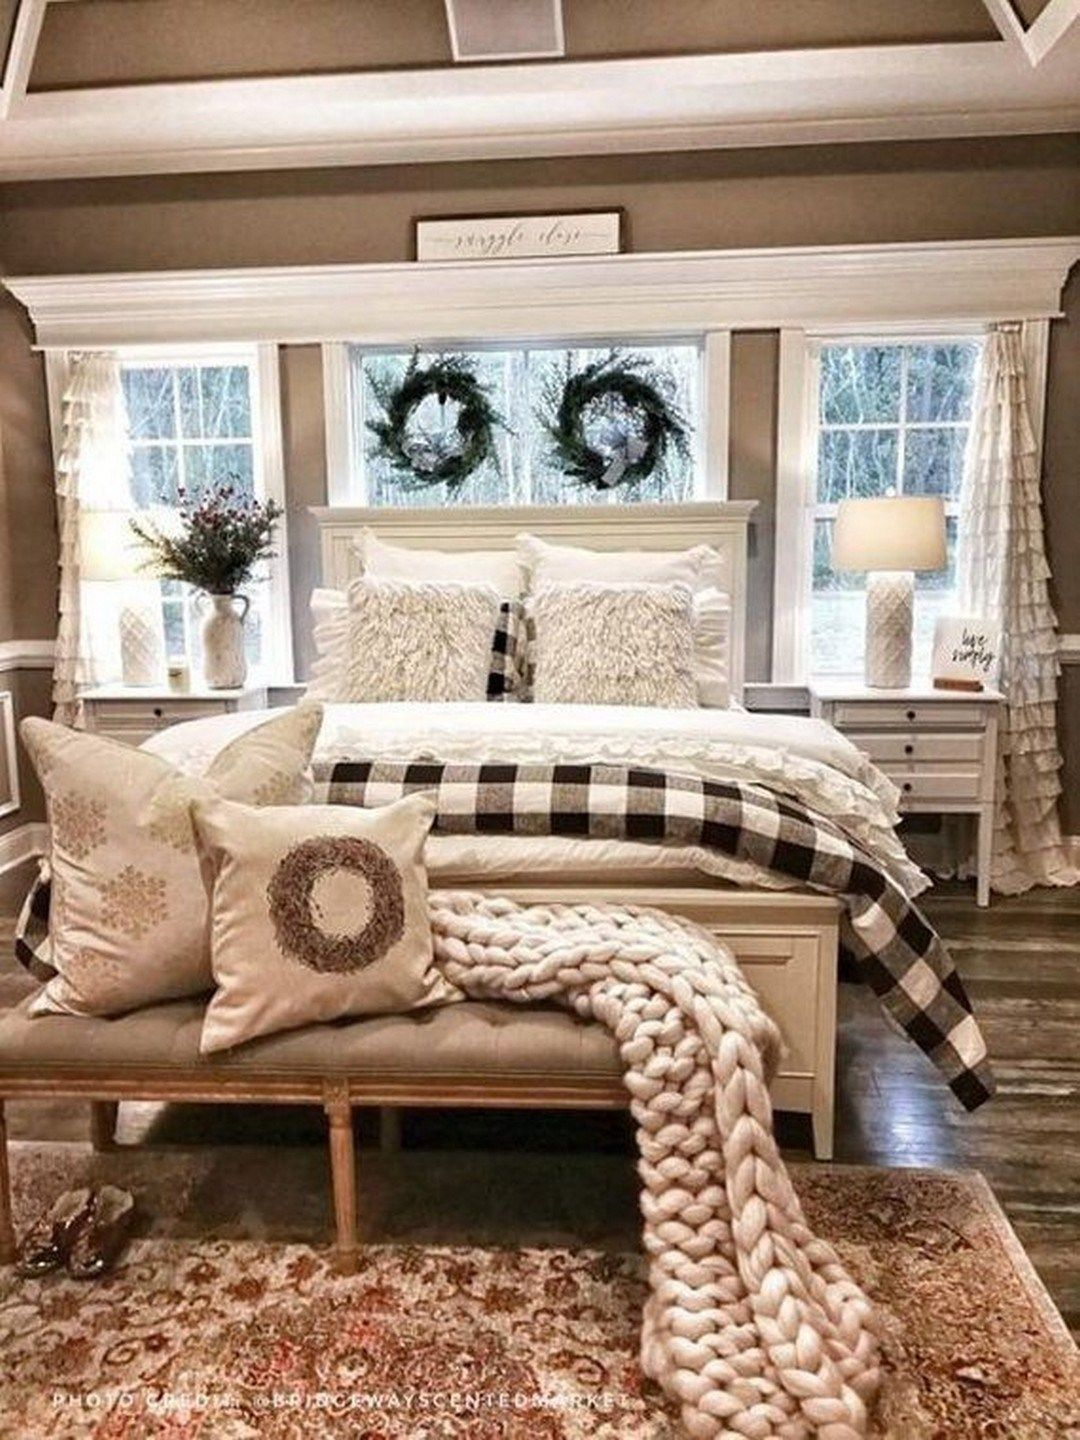 12 Farmhouse Bedroom Decor Ideas – Farmhouse Room   Farmhouse ...